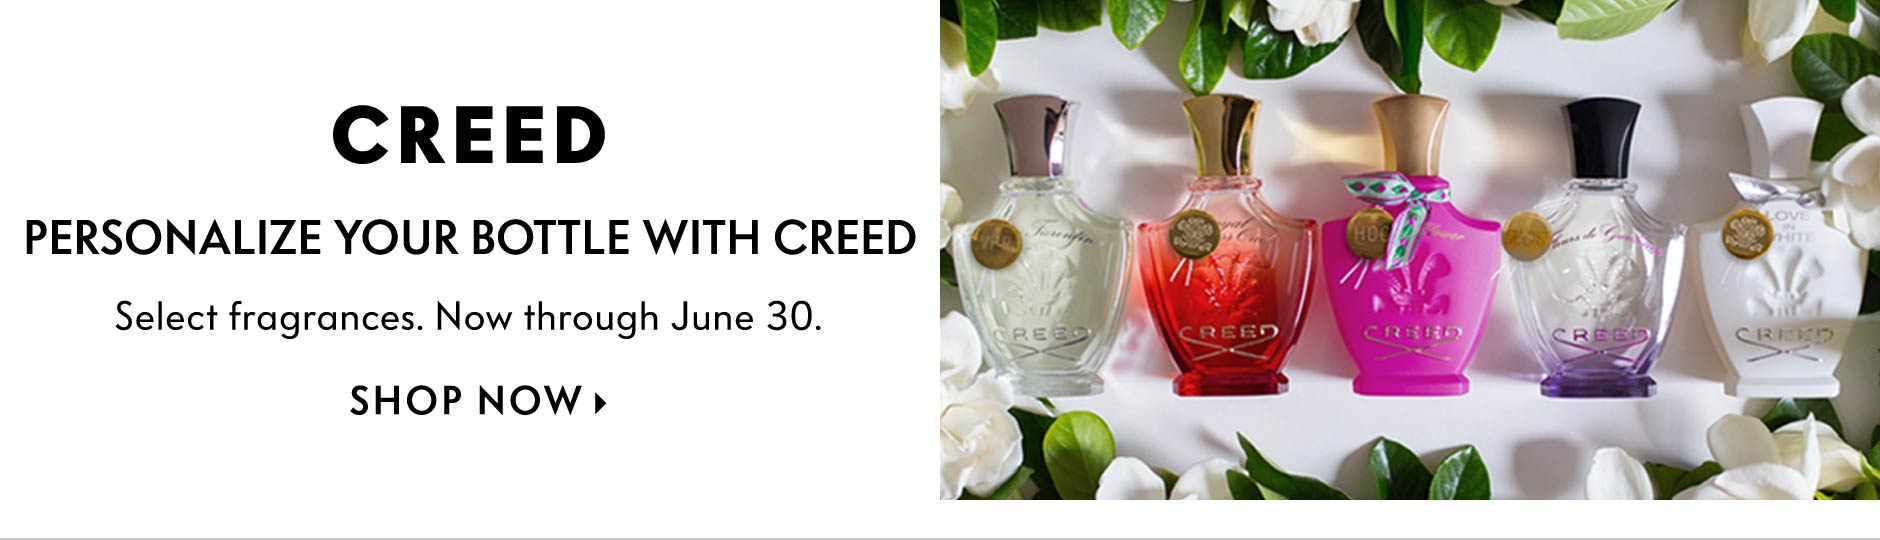 Creed: Personalize your bottle with Creed - Select fragrances. Now through June 30.